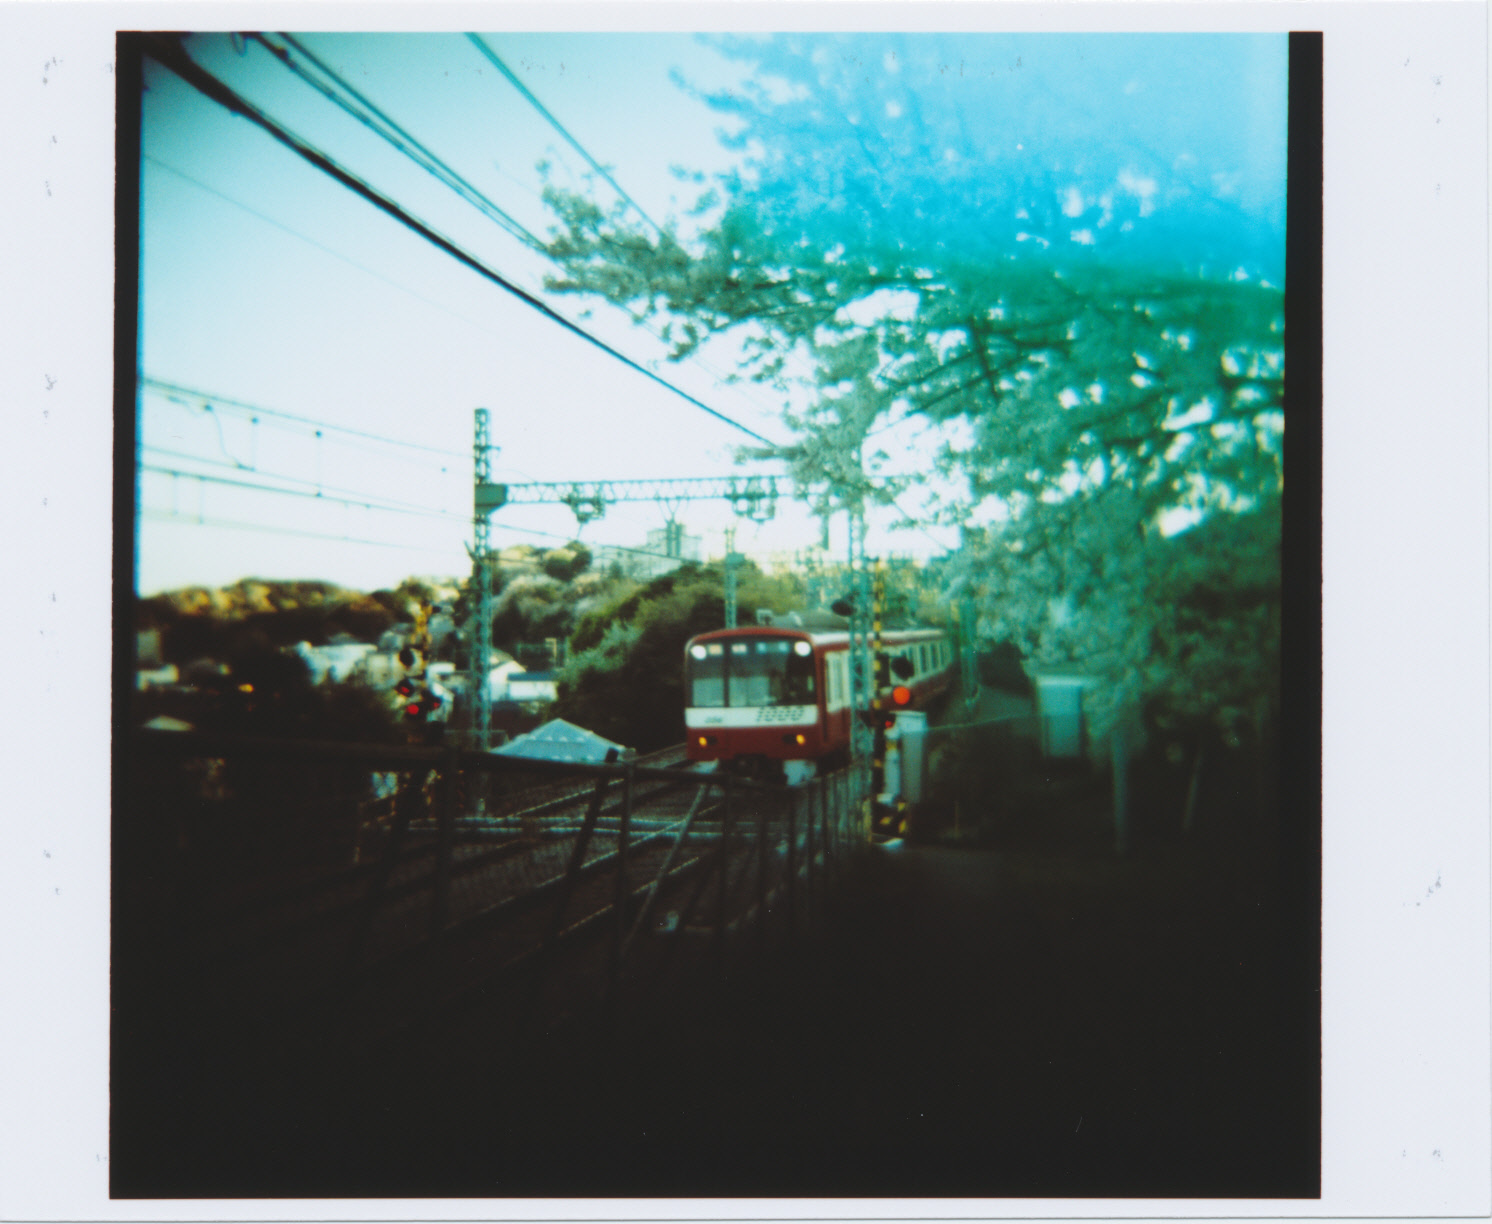 KODAK_EKTACHROME_E100G_sakura-train_01